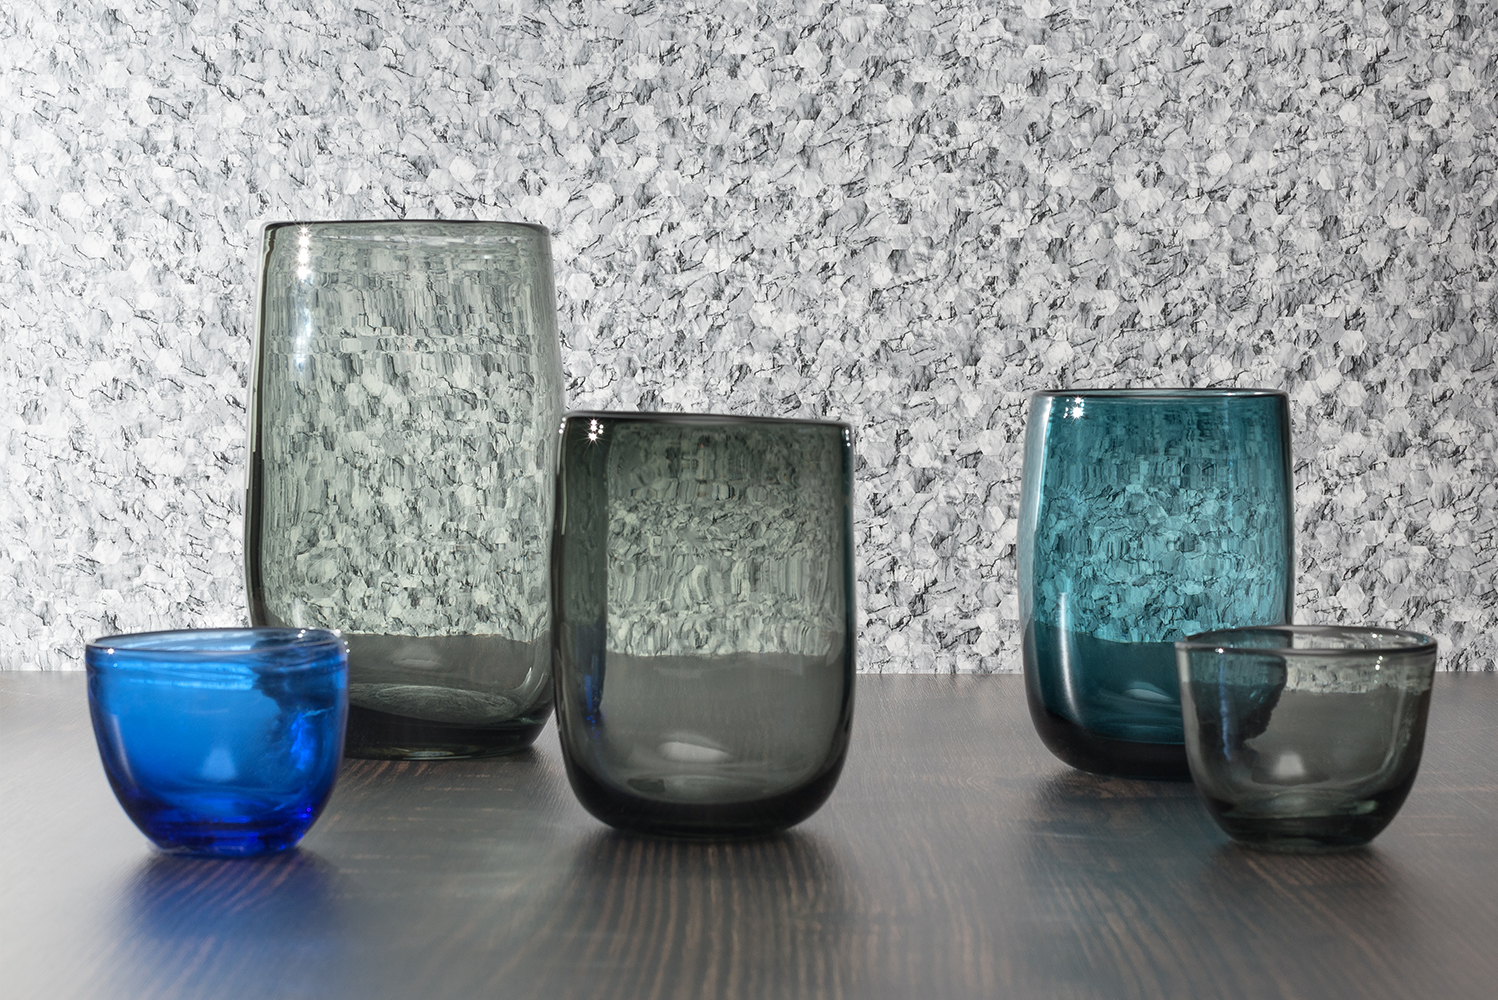 The collection includes Sapphire Ice, a large-scale stone design with white and blue veining.